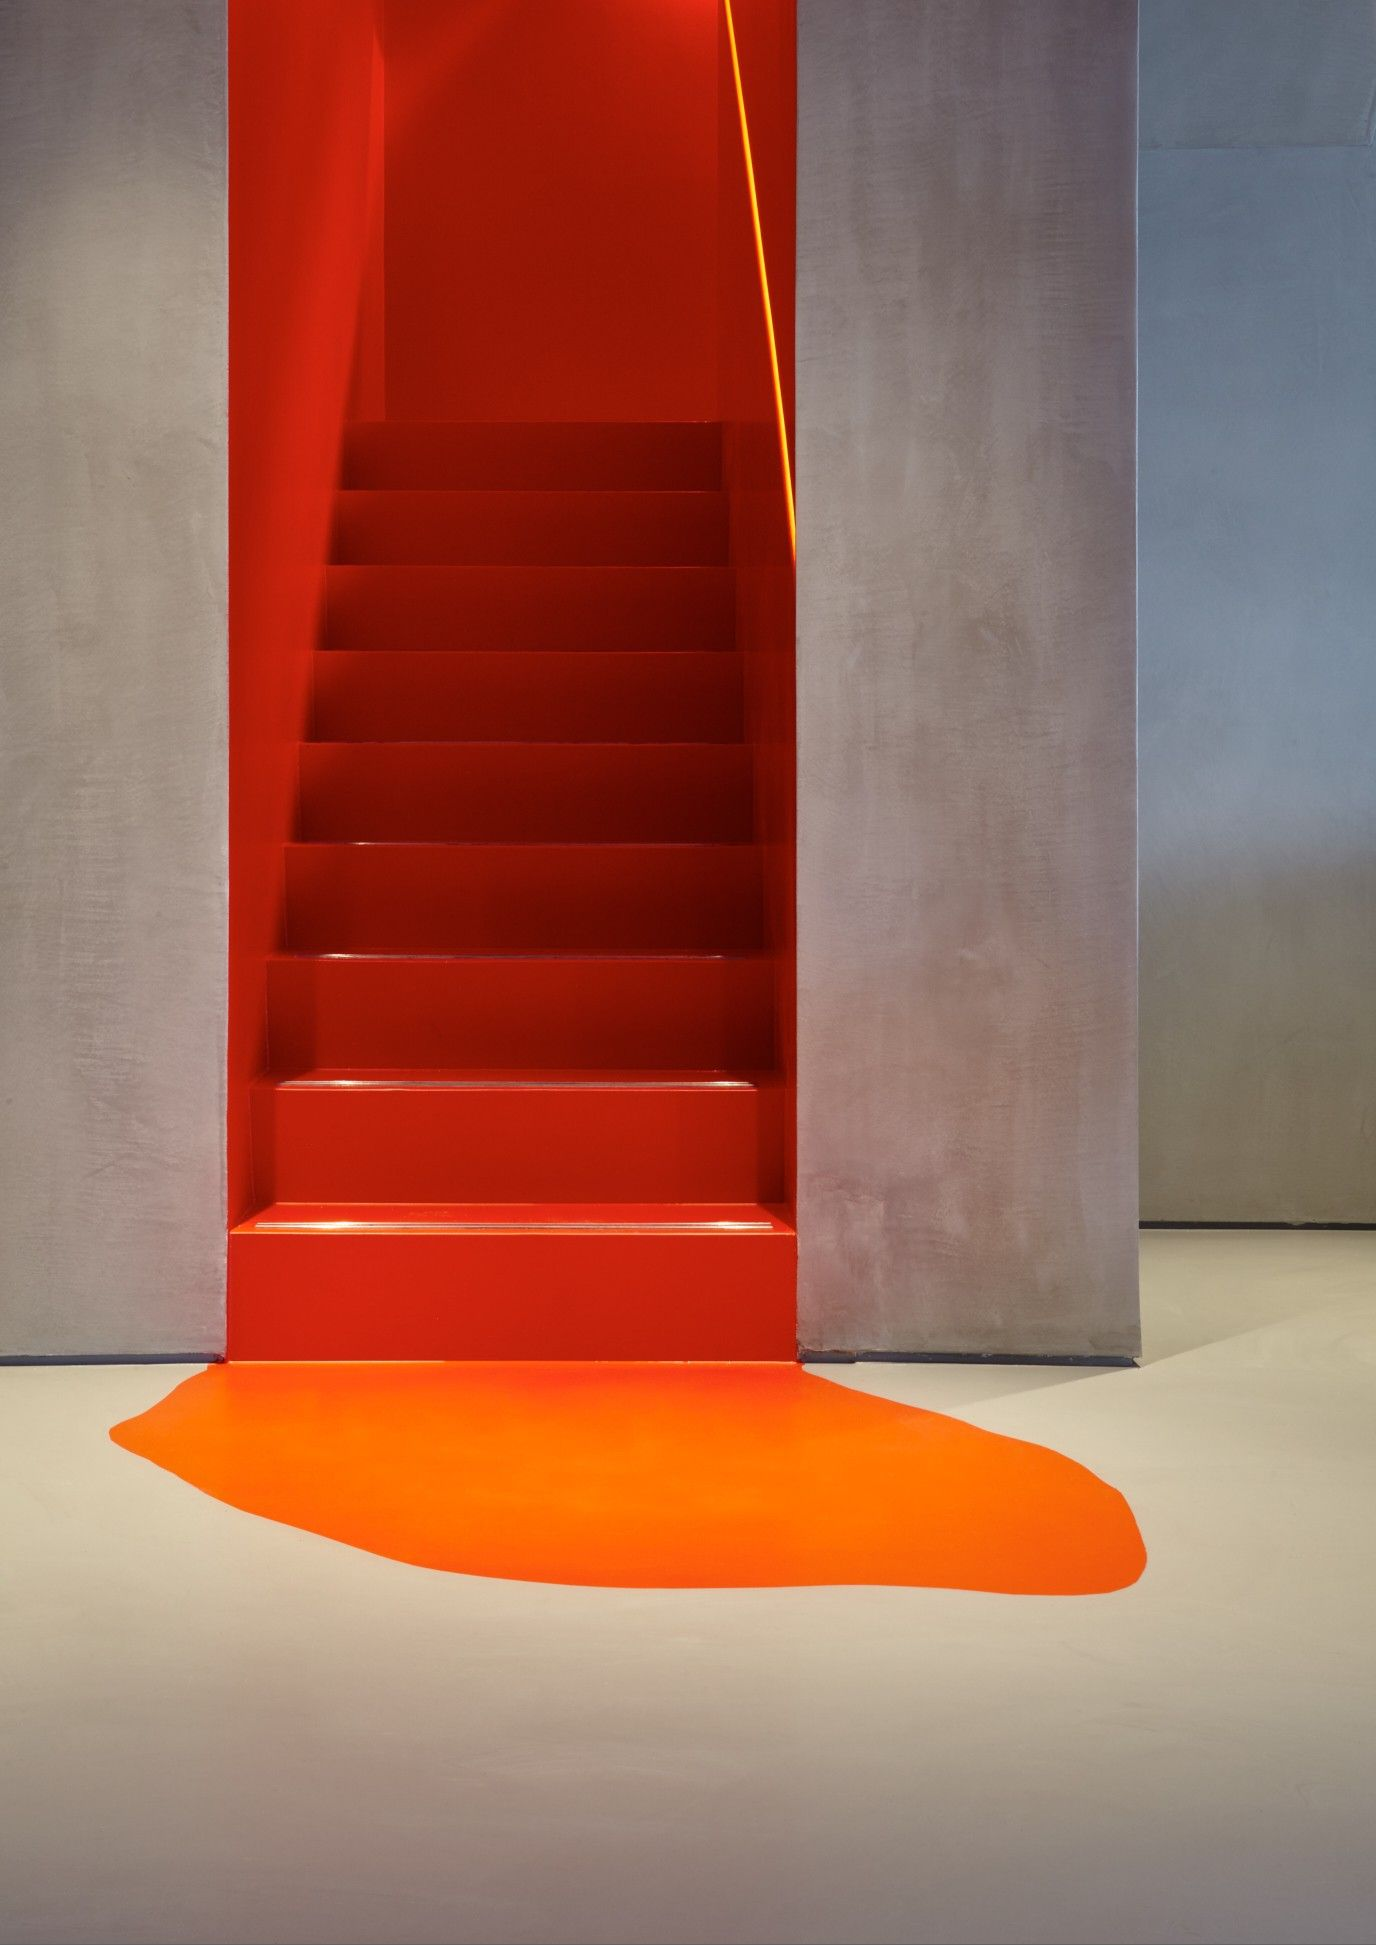 Painted Stairs Ideas Are You Readu For ѕome Sool ѕtairsaѕe Ideaѕ